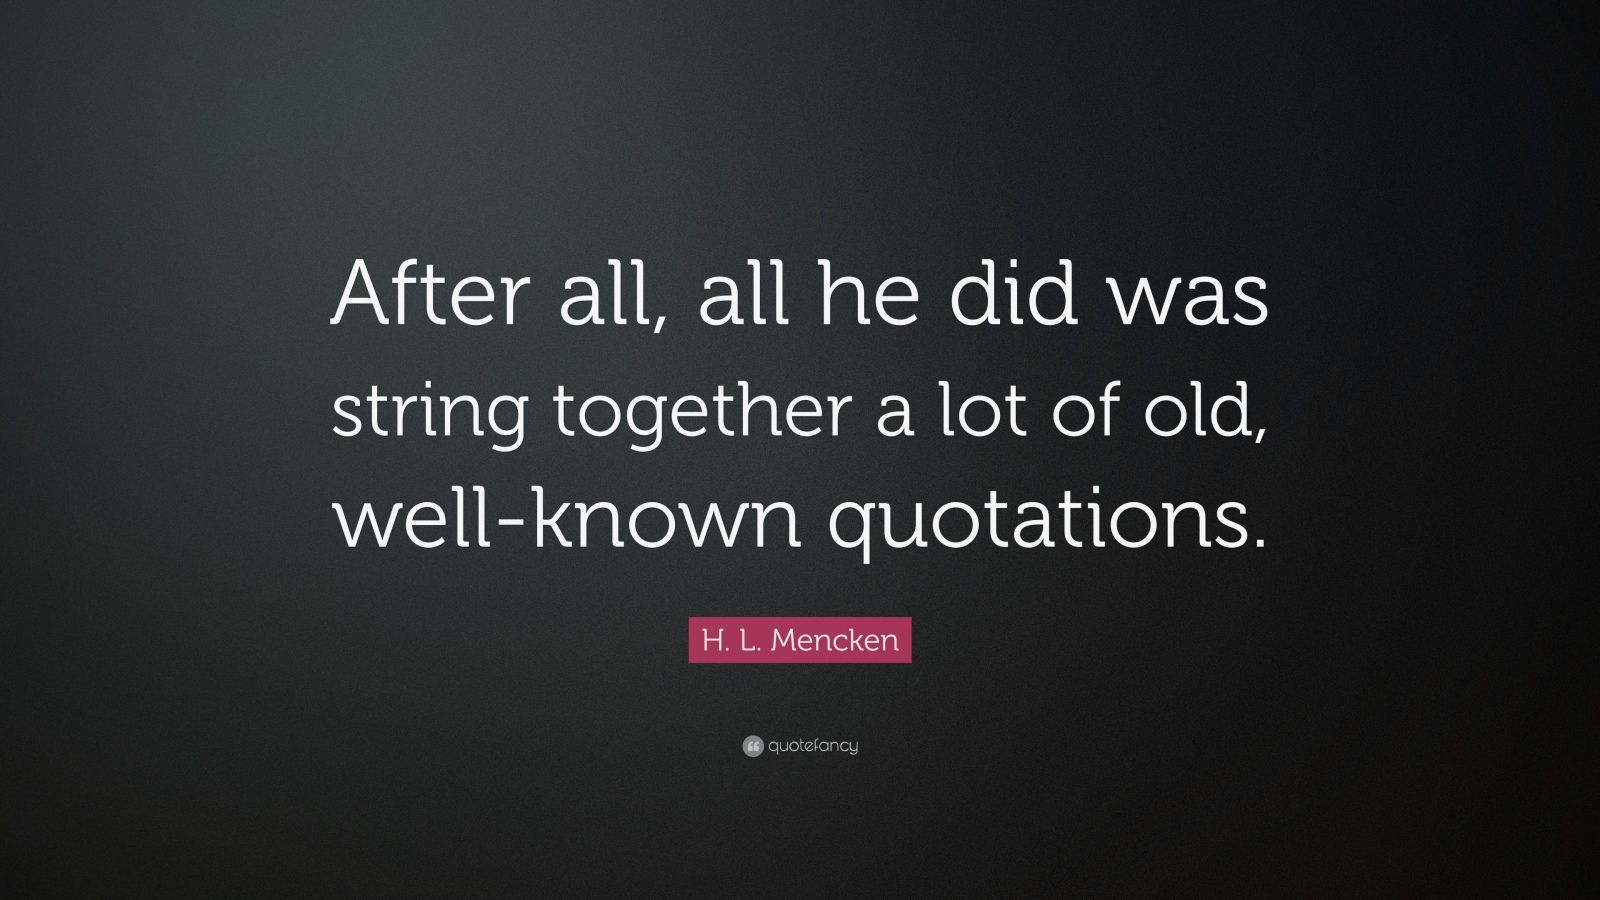 """H. L. Mencken Quote: """"After all, all he did was string together a lot of old, well-known quotations."""""""